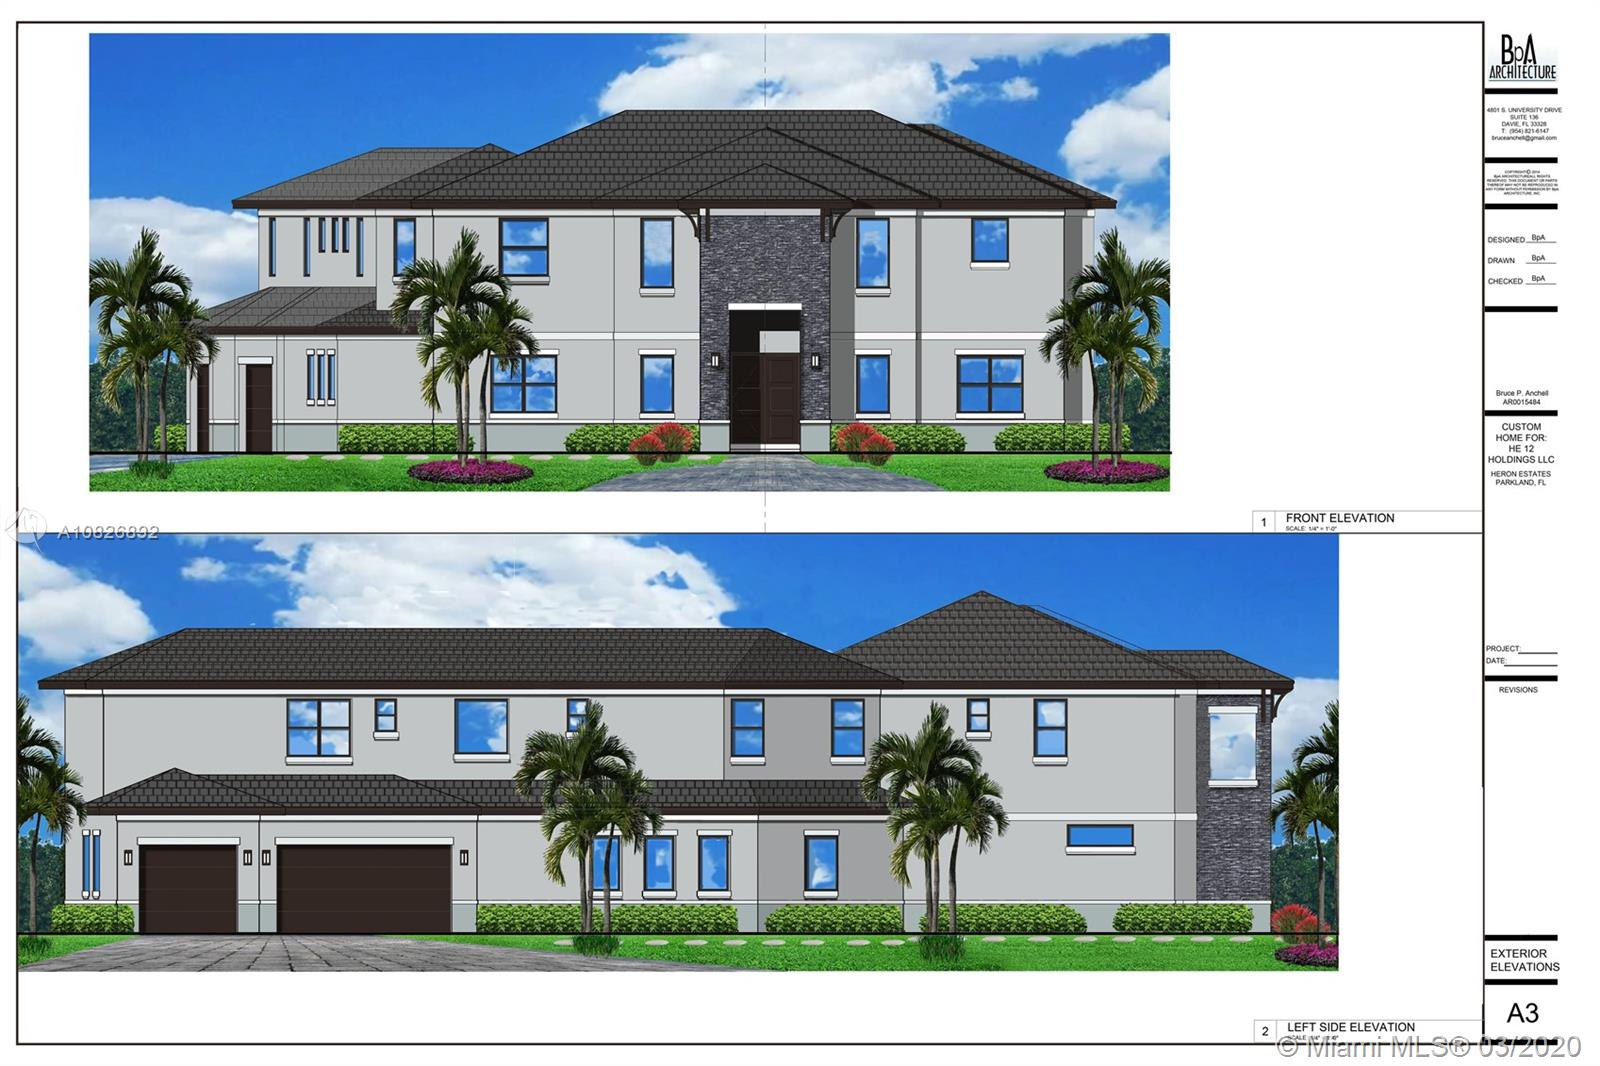 BUILD to SUIT your BRAND NEW HOME in Parkland!!! - CUSTOM NEW CONSTRUCTION IN EXCLUSIVE HERON ESTATES @ HERON BAY PARKLAND. OVERSIZED CORNER LOT 18,134 SQFT.  - 5,089 SQFT UNDER A/C - TOTAL - 6,572 SQFT - 6 BEDROOM 7.5 BATHS - HOME OFFICE - ENTERTAINMENT ROOM - 3 CAR GARAGE - IMPACT RESISTANT WINDOWS & DOORS - POOL & OUTDOOR SUMMER KITCHEN - CONTEMPORARY DESIGN - HIGH END FINISHES ACCORDING TO BUYER'S TASTE - LUSH LANDSCAPING - FULL SET OF PLANS AVAILABLE FOR REVIEW - GREAT OPPORTUNITY TO OWN BRAND NEW CONSTRUCTION IN HIGHLY SOUGHT AFTER PARKLAND - GREAT SCHOOLS.LOT IS ALSO AVAILABLE FOR SALE